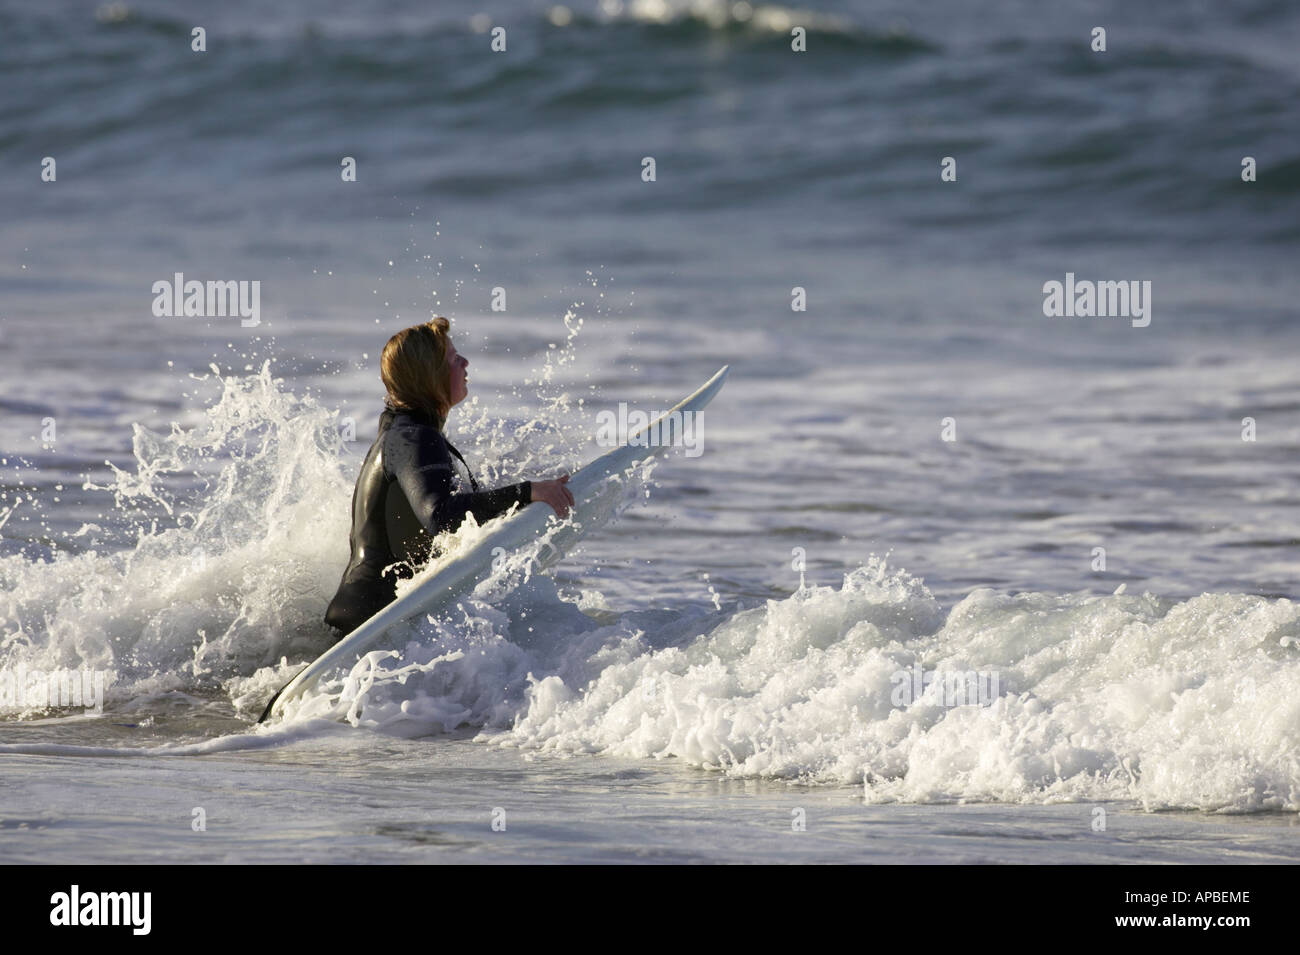 female surfer in wet suit with white board gets hit by a wave wading out to sea off white rocks beach portrush - Stock Image